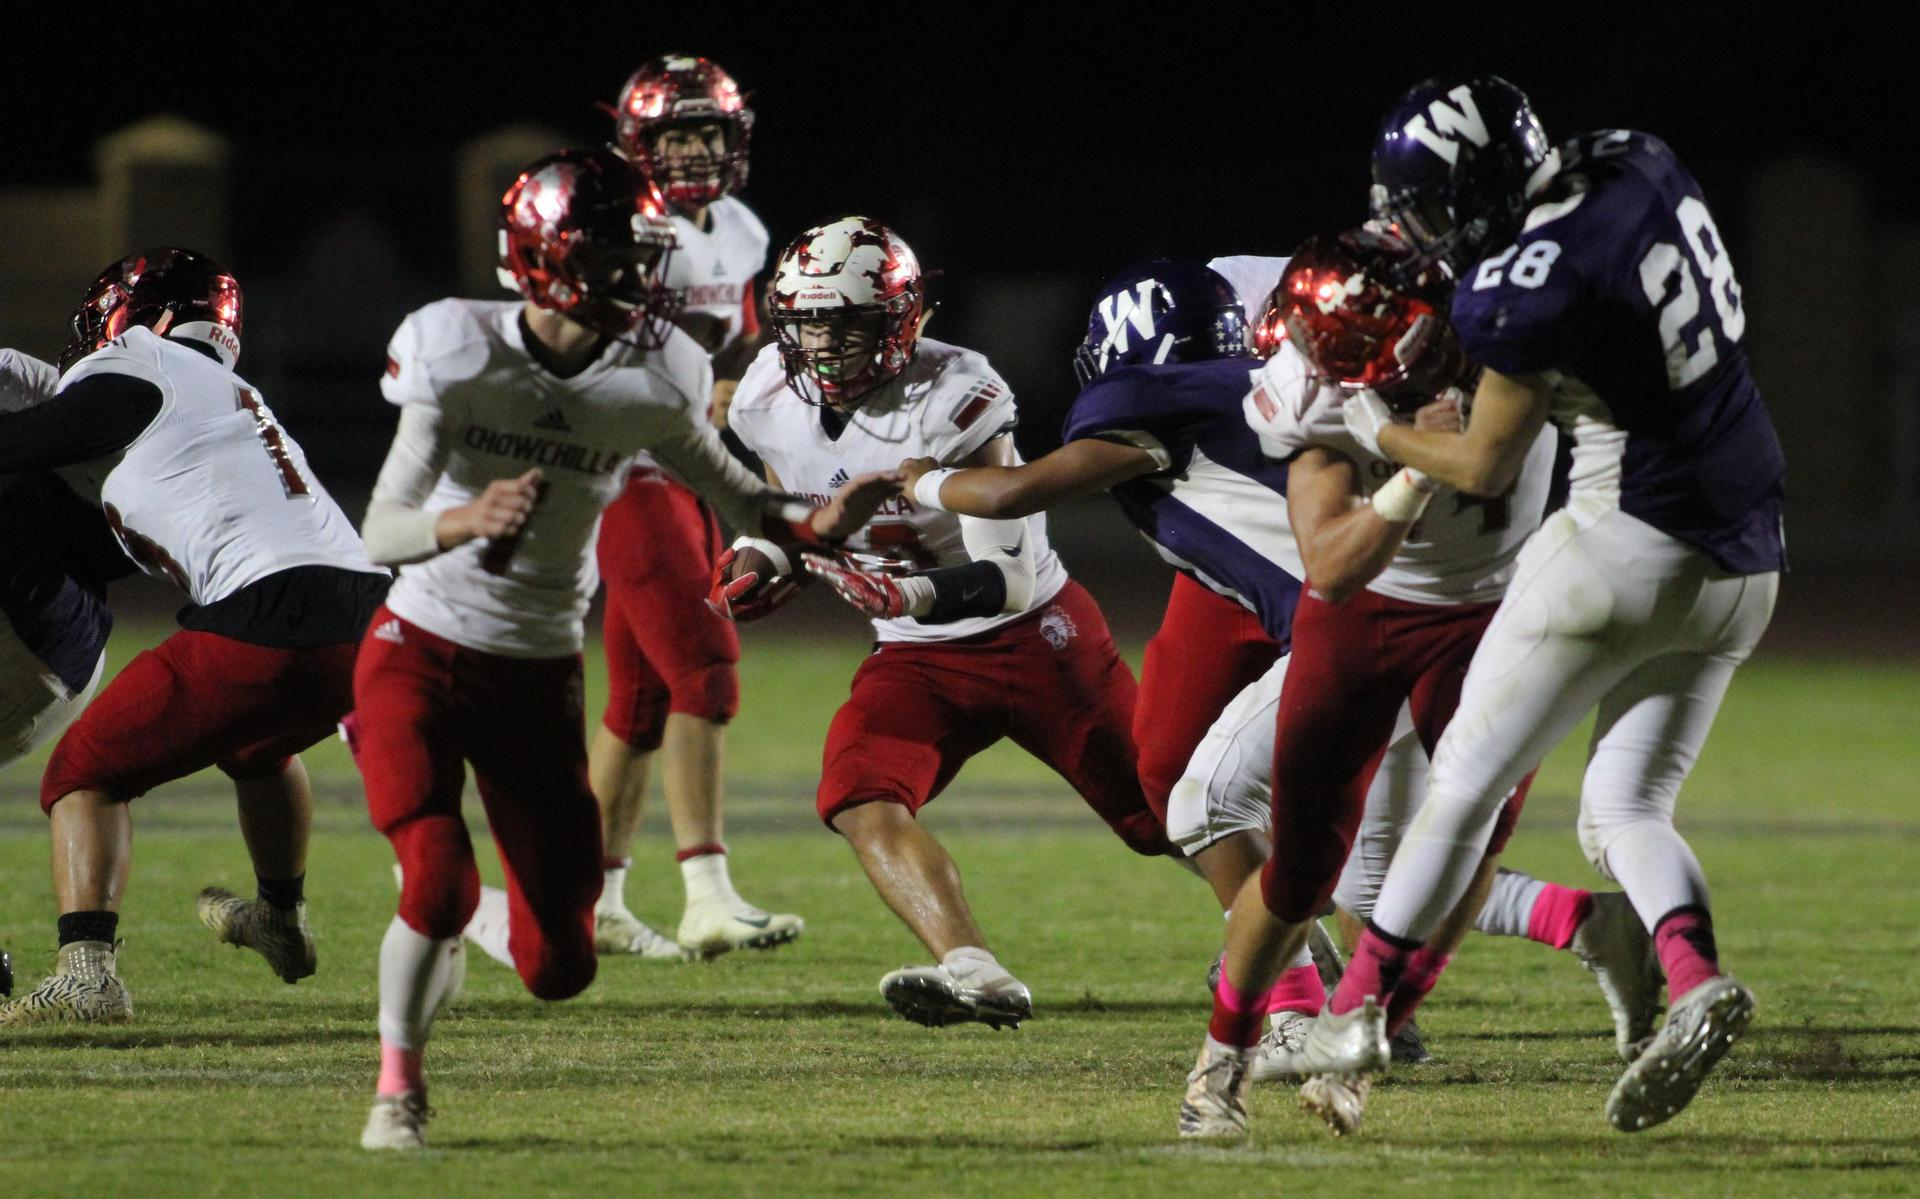 Varsity Football players in action against Washington Union